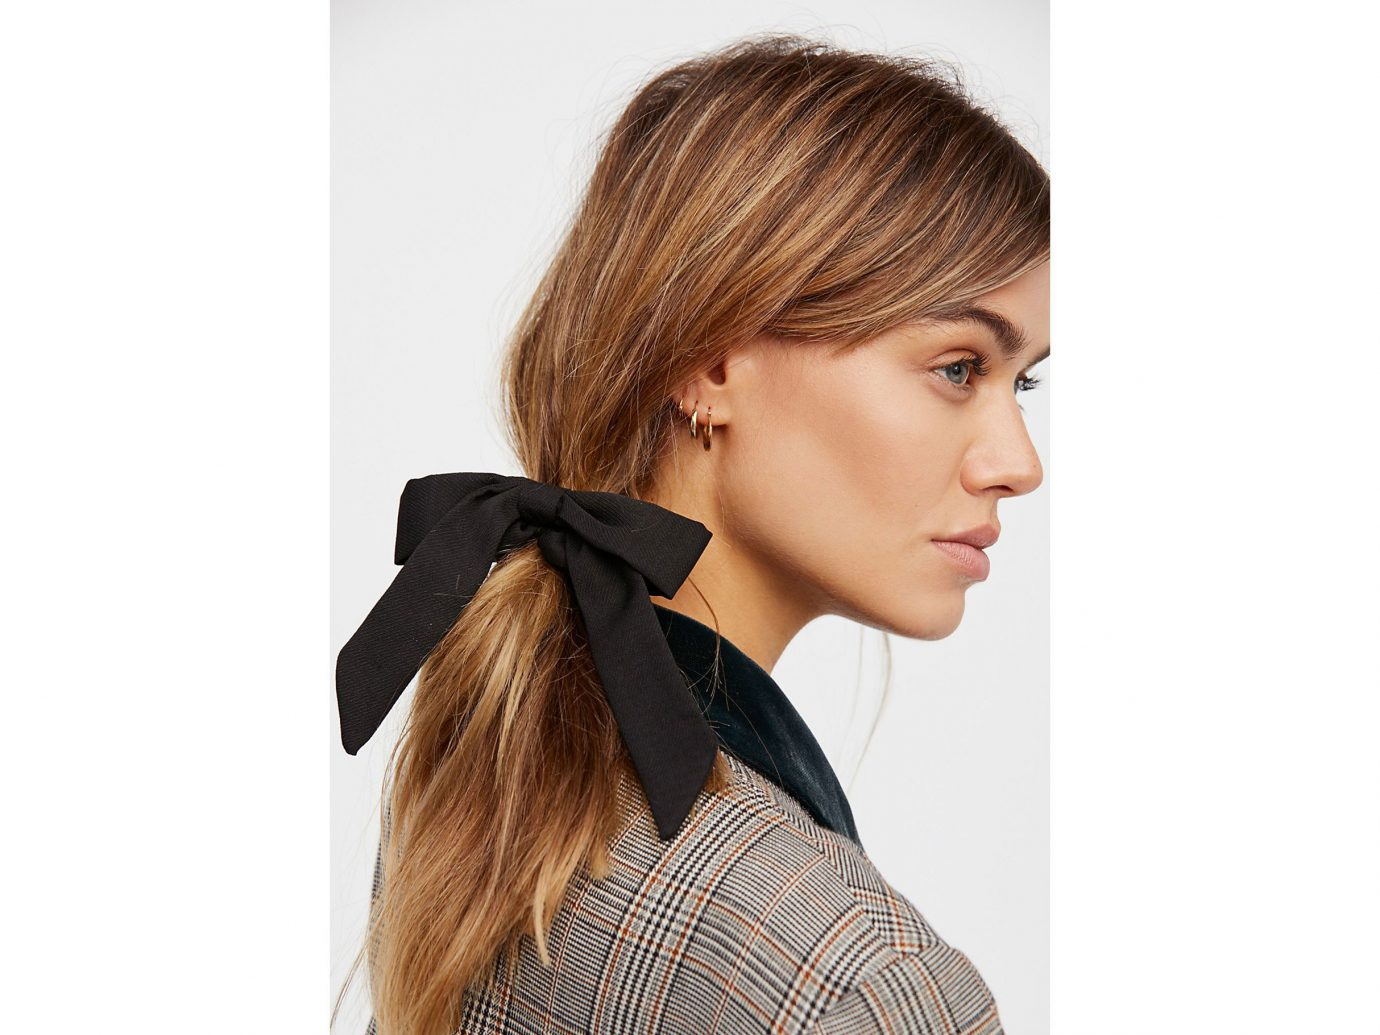 City NYC Style + Design Travel Shop person woman hair hairstyle Beauty chin ear wearing forehead neck long hair brown hair hair coloring hair tie lady layered hair posing